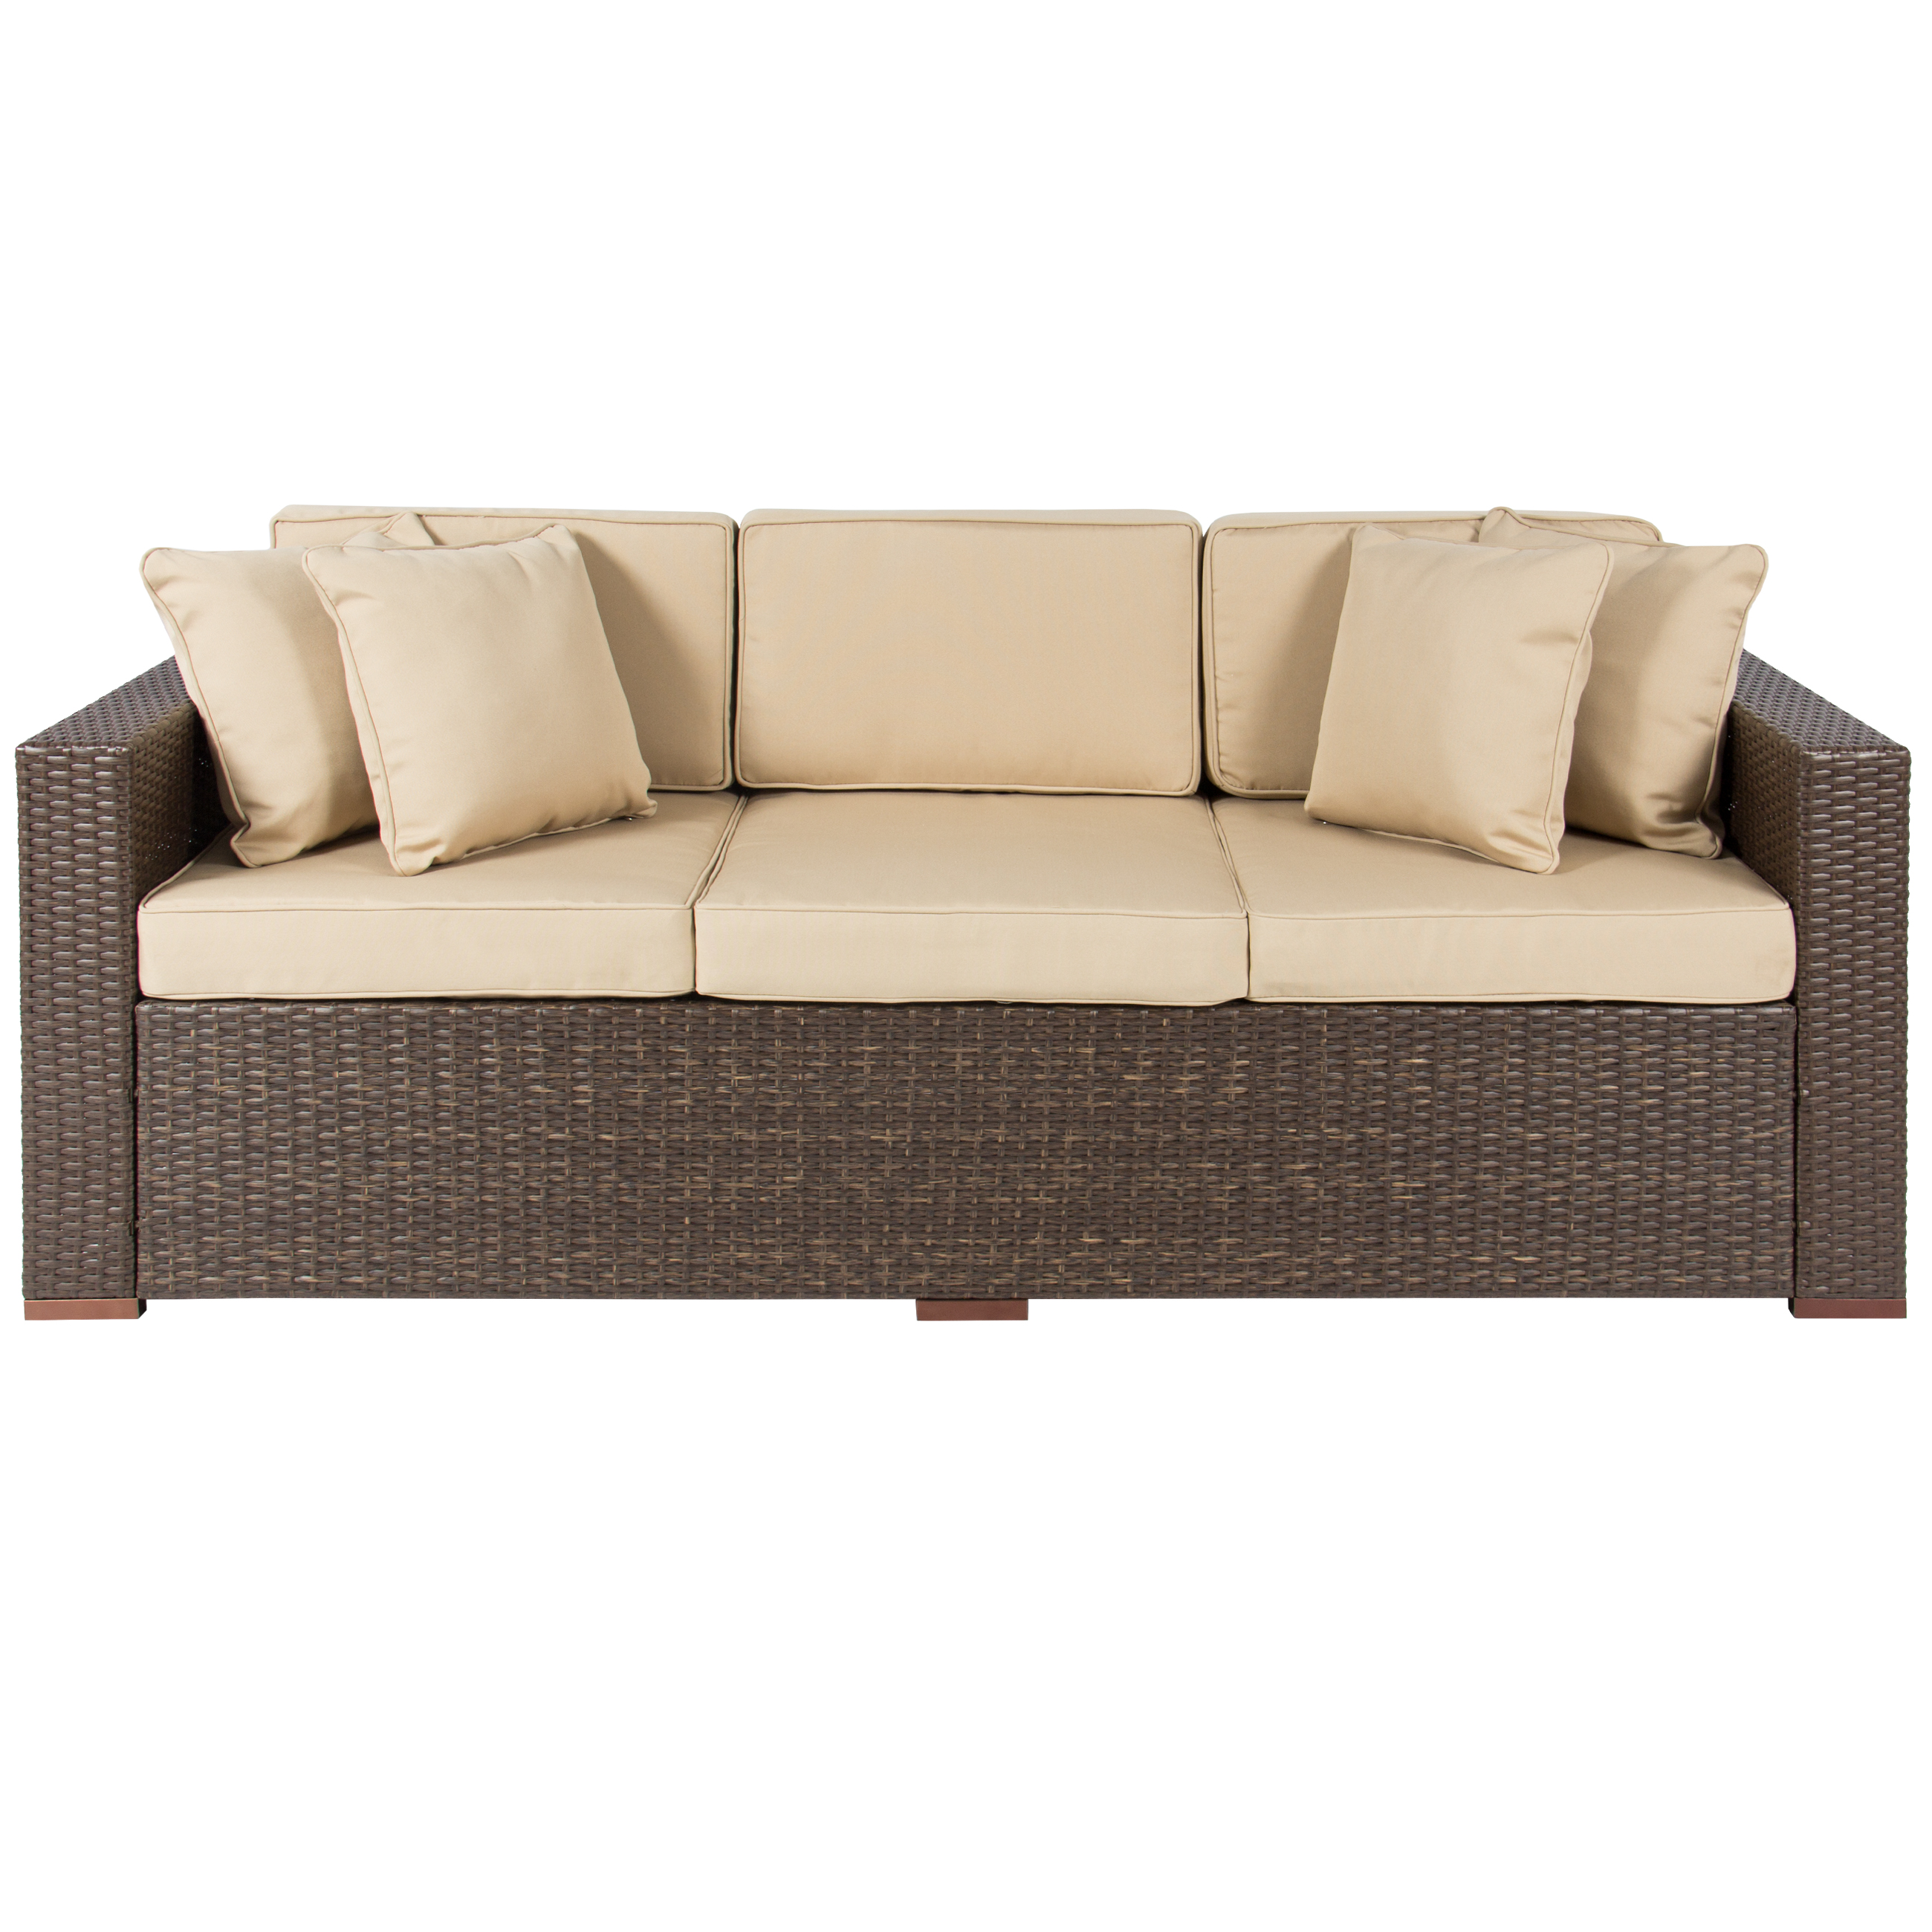 Outdoor wicker patio furniture sofa 3 seater luxury for 3 on a couch